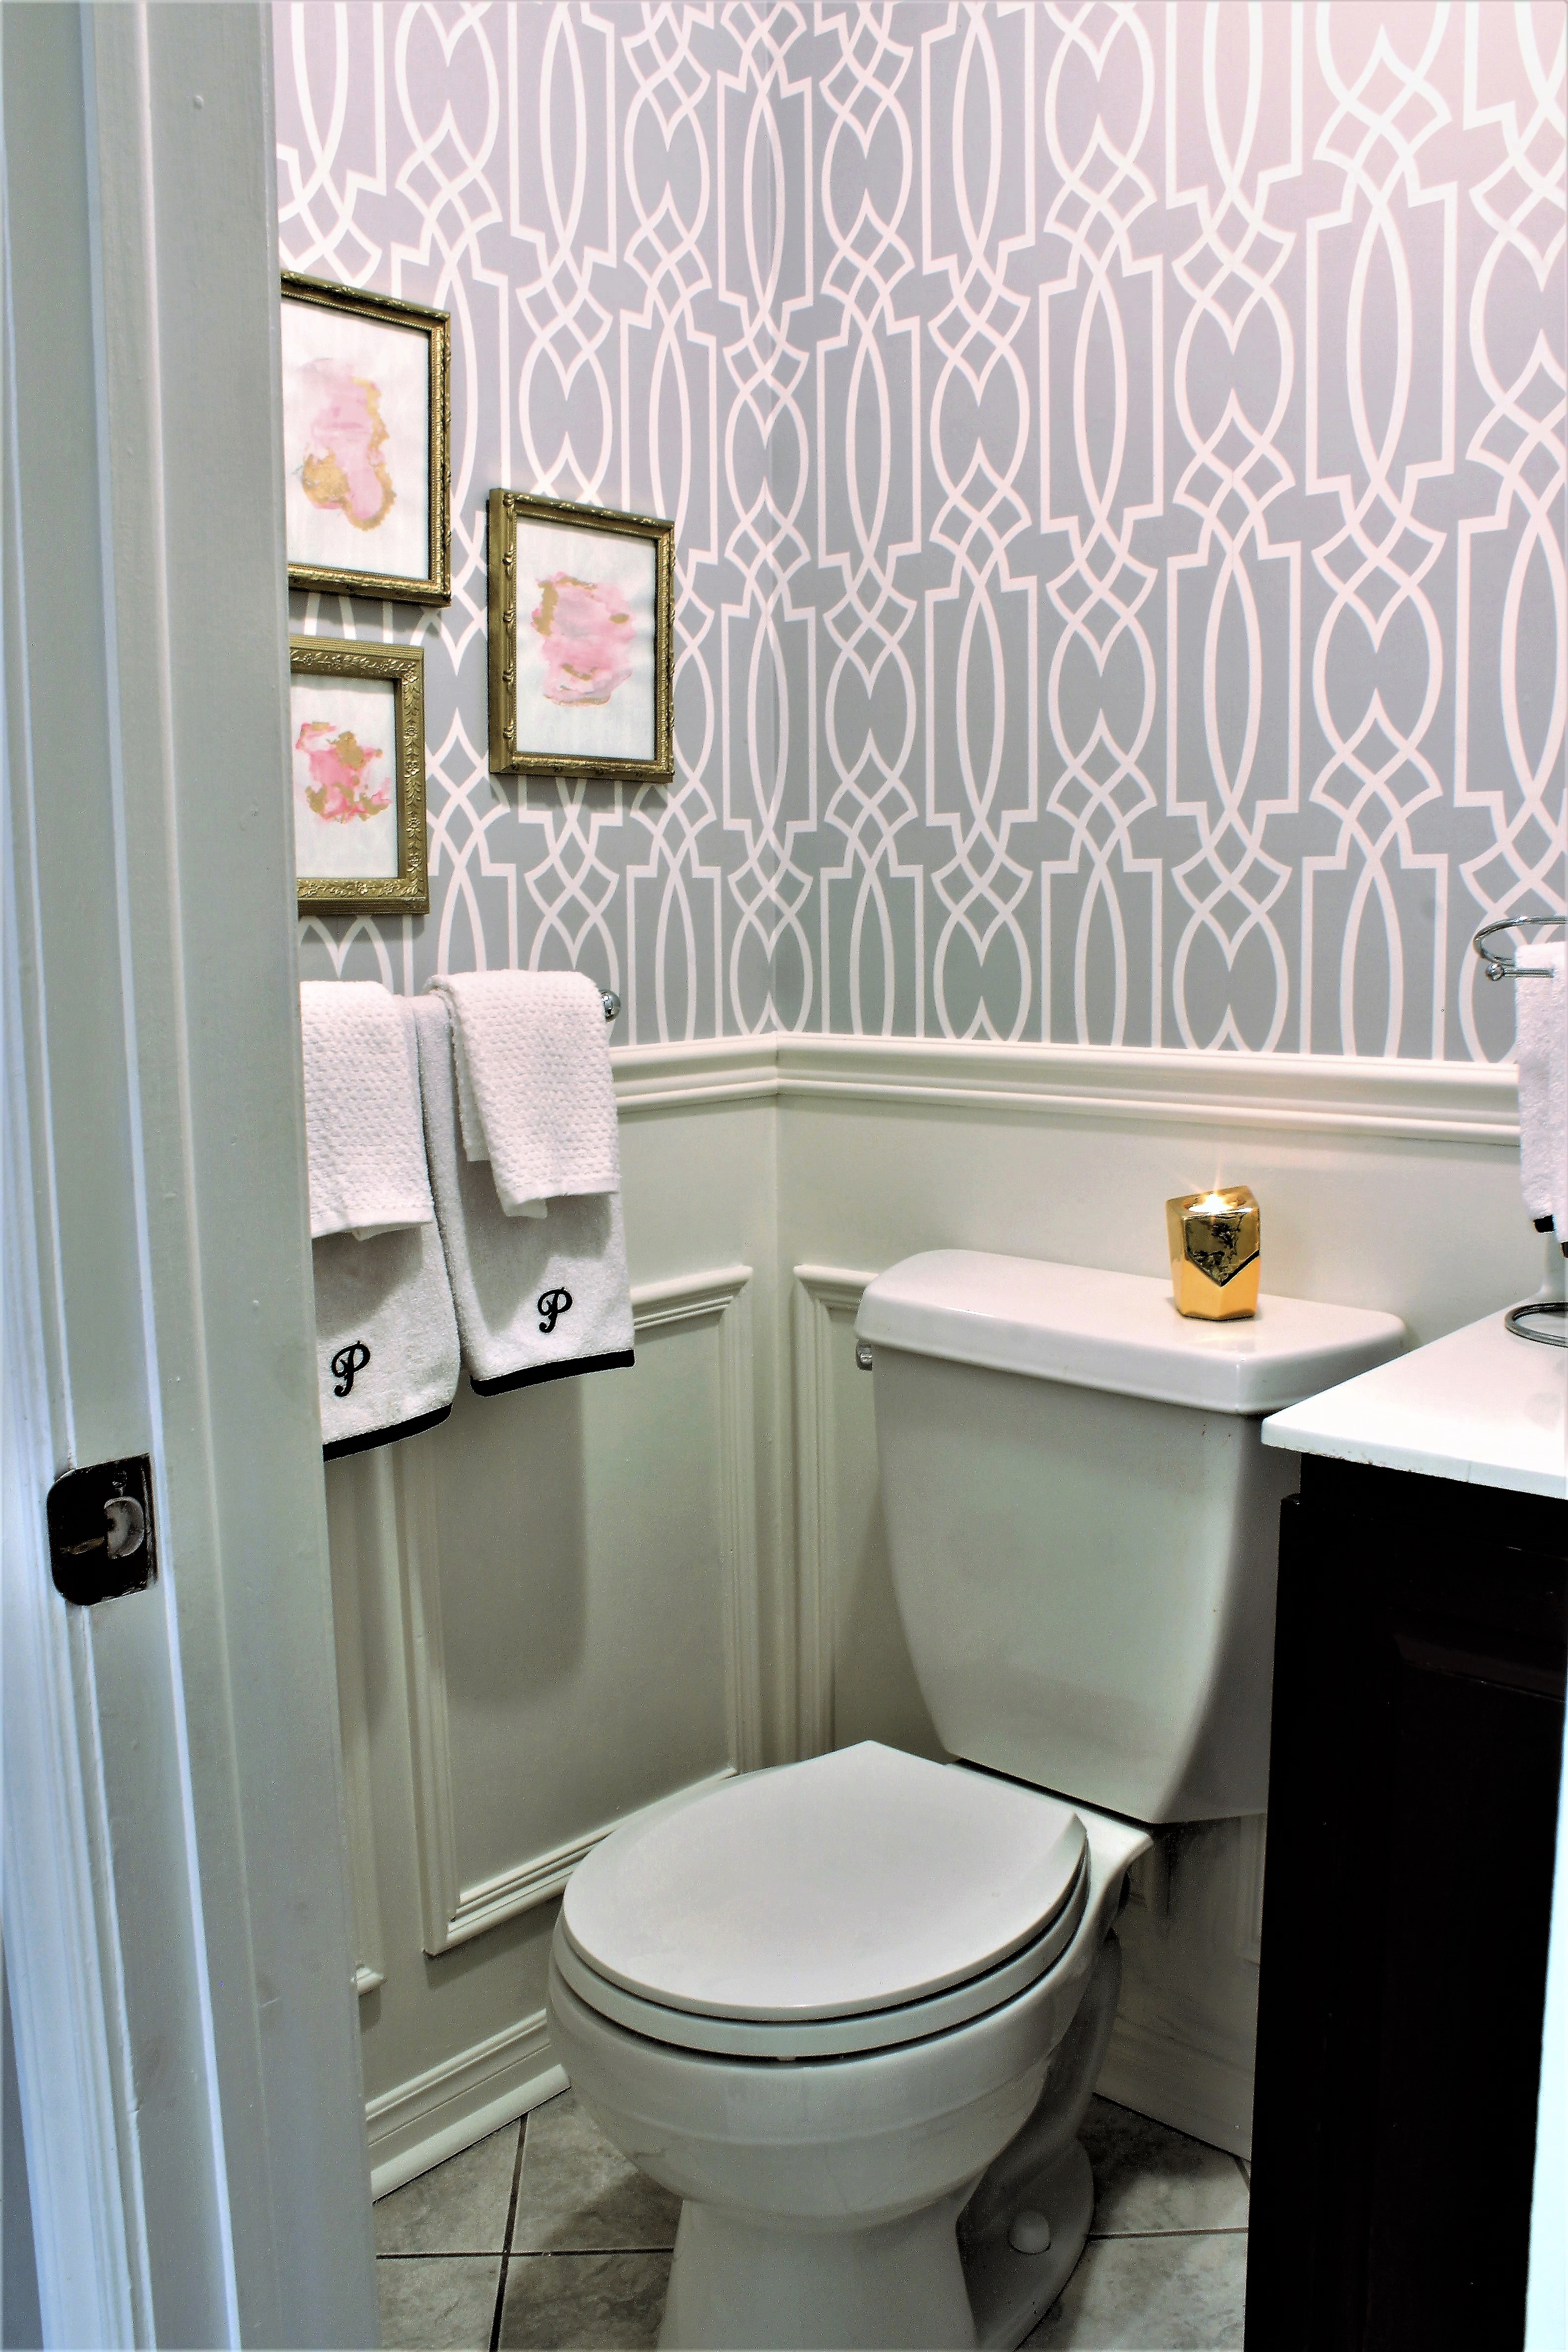 Powder Room Update Week 5 $100 Room Challenge a purdy little